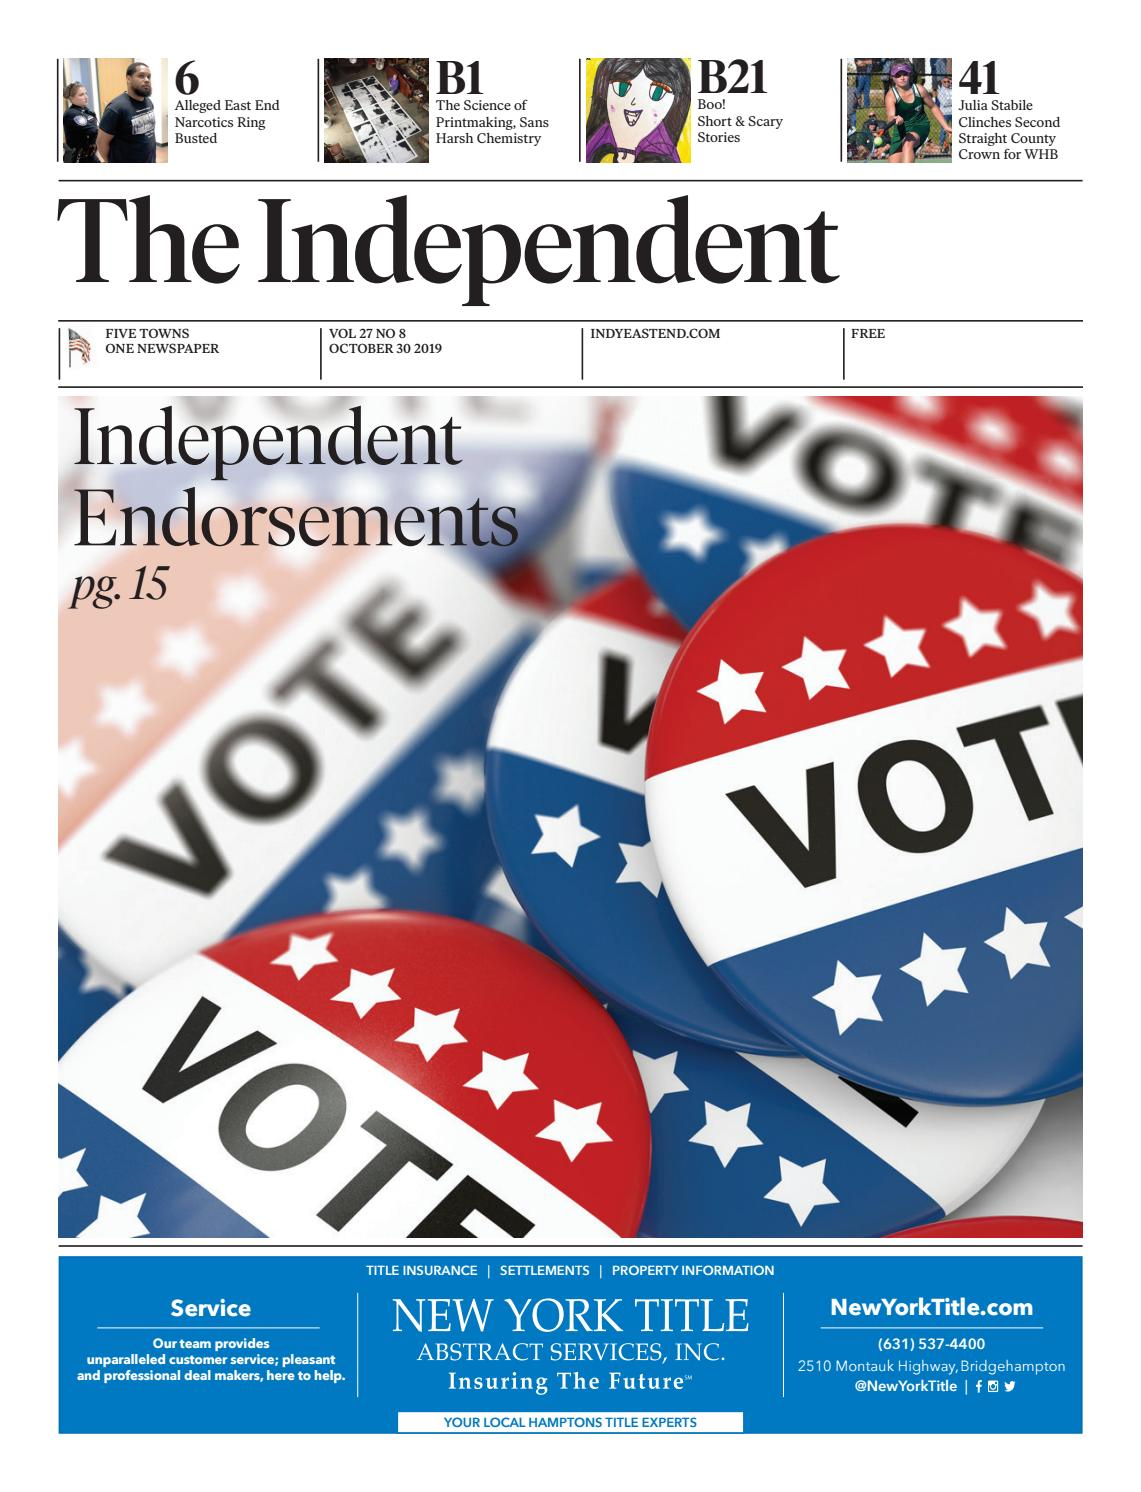 The Independent 103019 by The Independent Newspaper - issuu